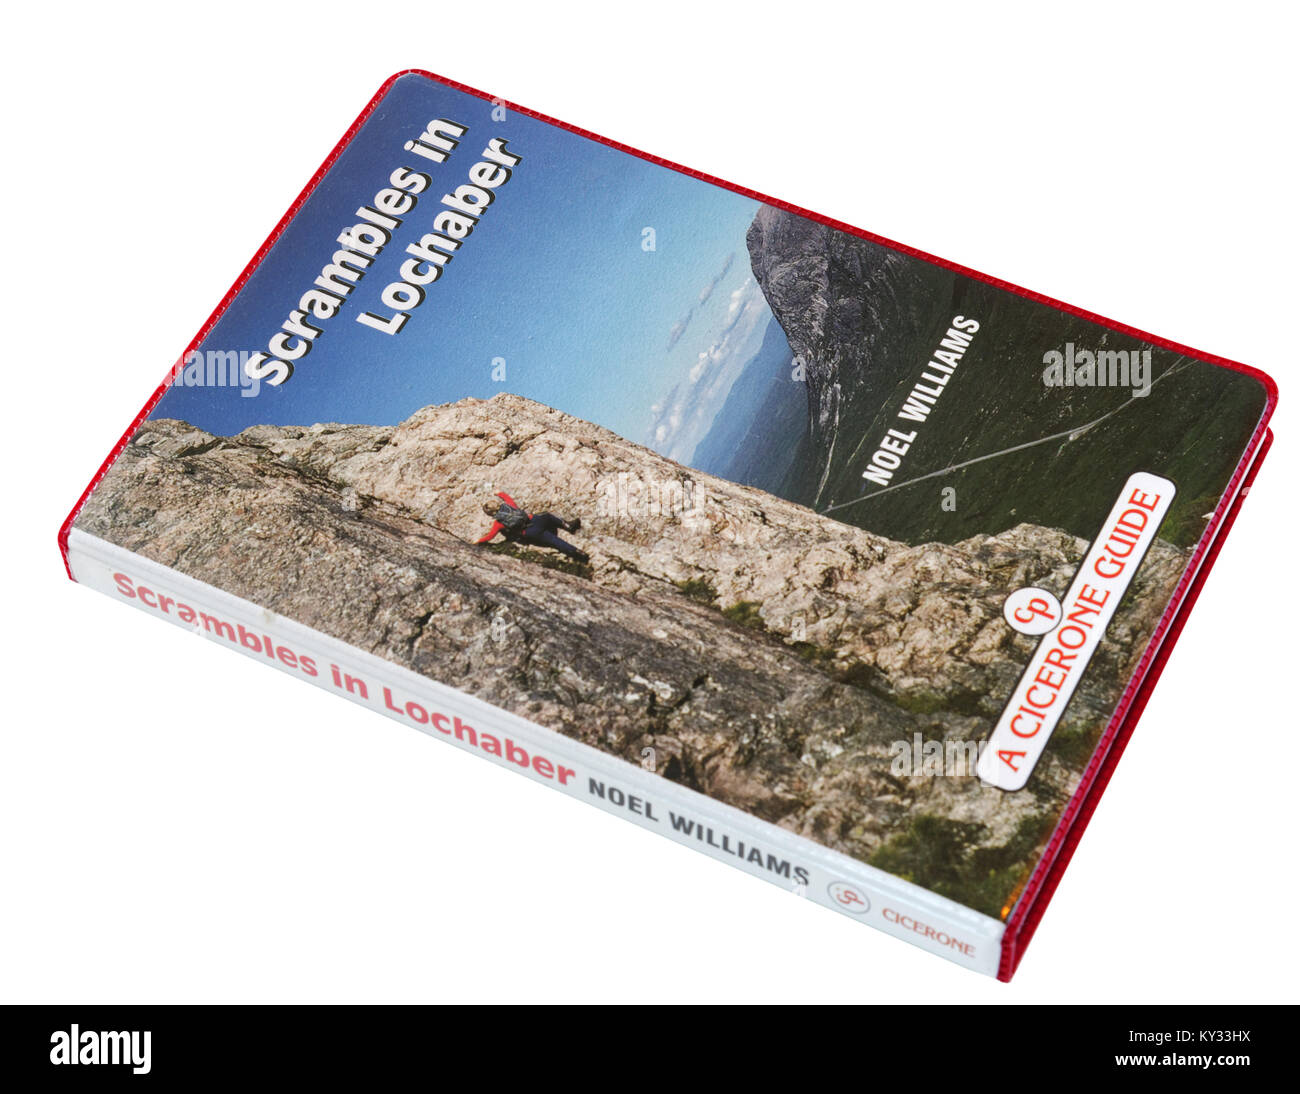 Guidebook to Scrambling in Lochaber in the Scottish Highlands - Stock Image